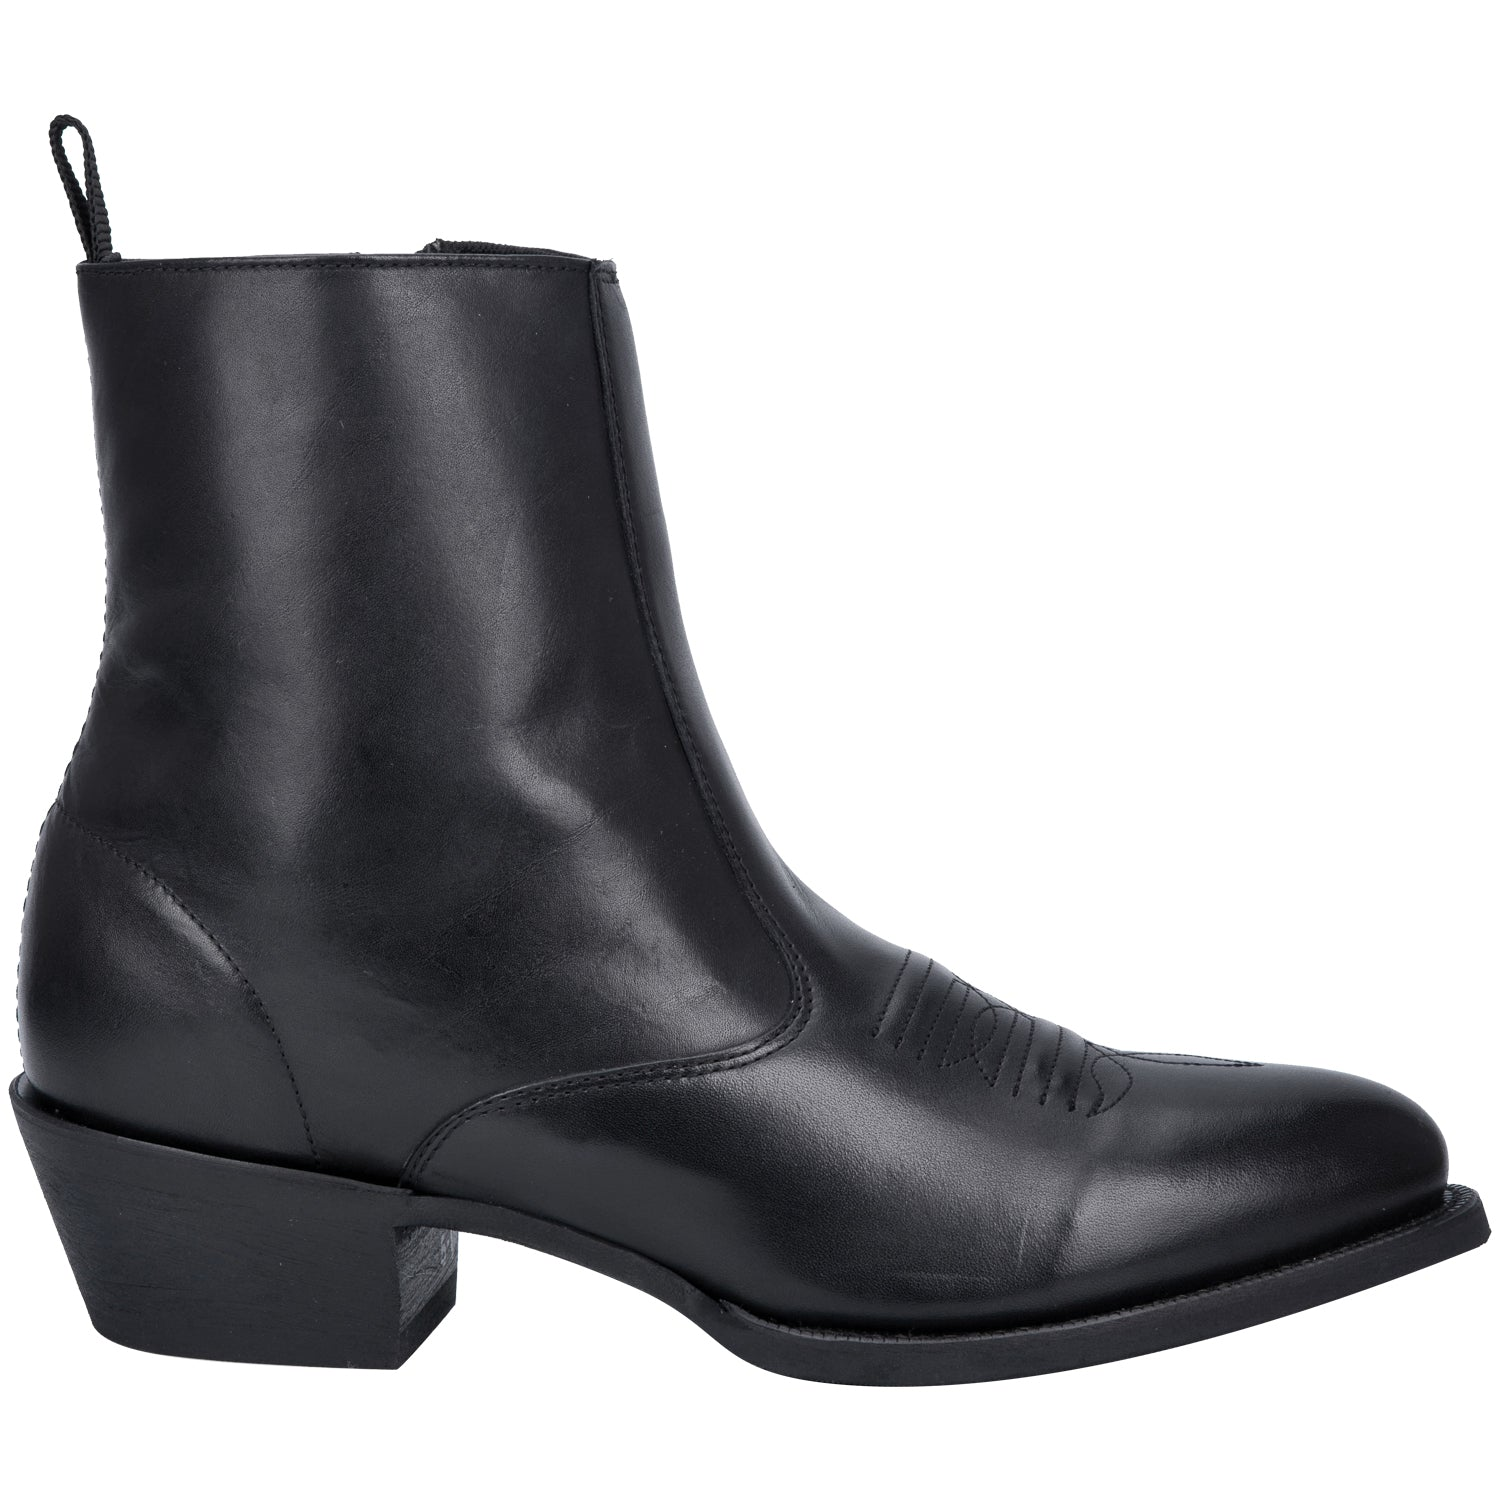 FLETCHER LEATHER BOOT 5789471637546